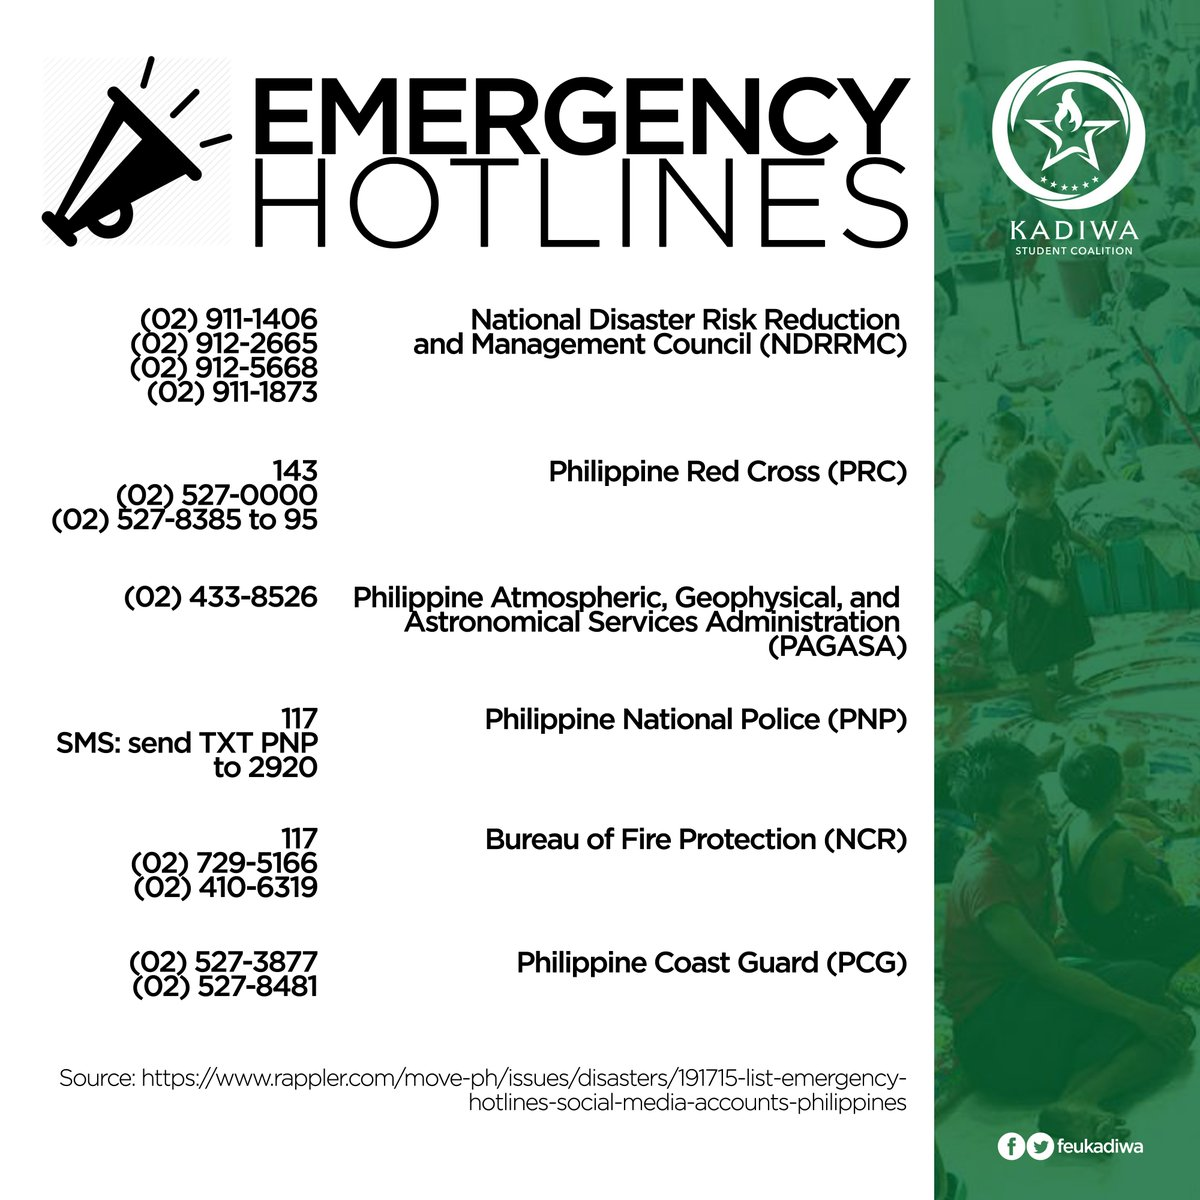 [EMERGENCY HOTLINES] In light of the recent heavy downpour that has been causing floods and blackouts, here are the emergency hotlines that you can contact.   Feel free to save these as you will never know when it will come handy.  Stay alert and safe, Kadiwa!   #KardingPH<br>http://pic.twitter.com/MjA2ewOB8m